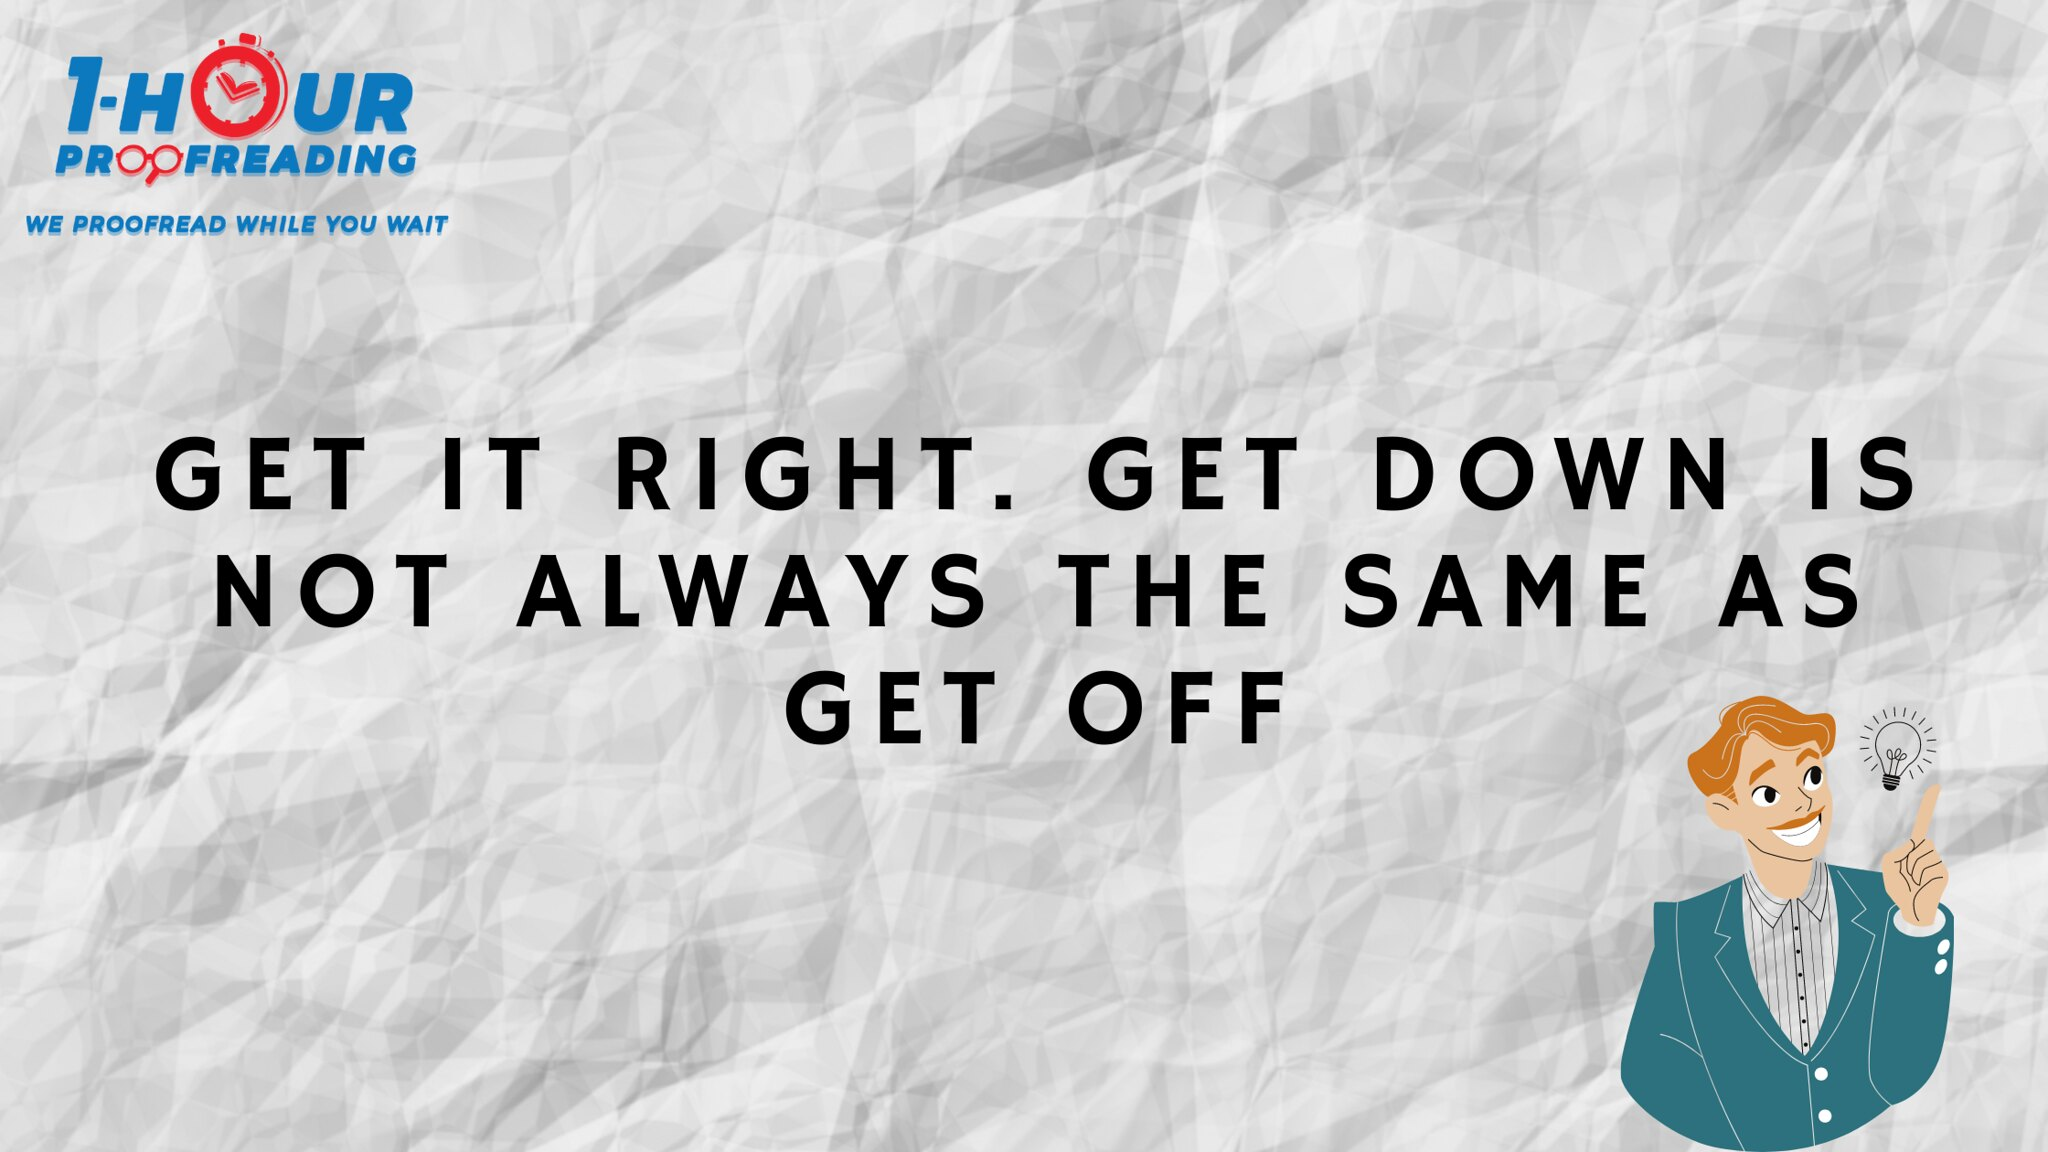 Get Down is Not Always the Same as Get Off